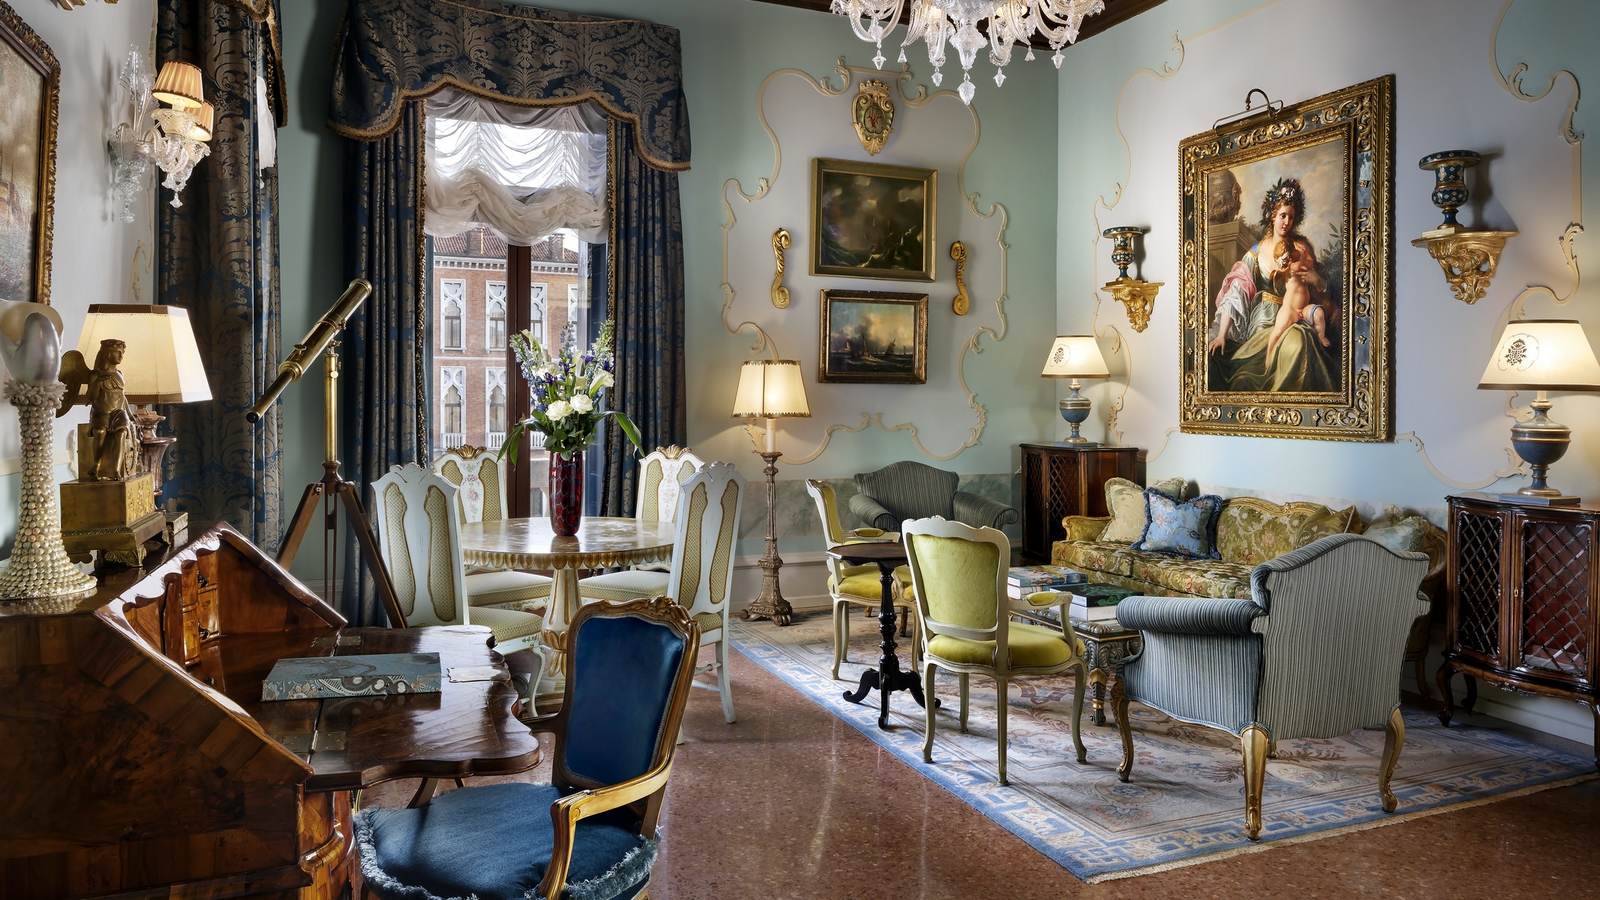 The Donghia Suite Patron Canal Grande